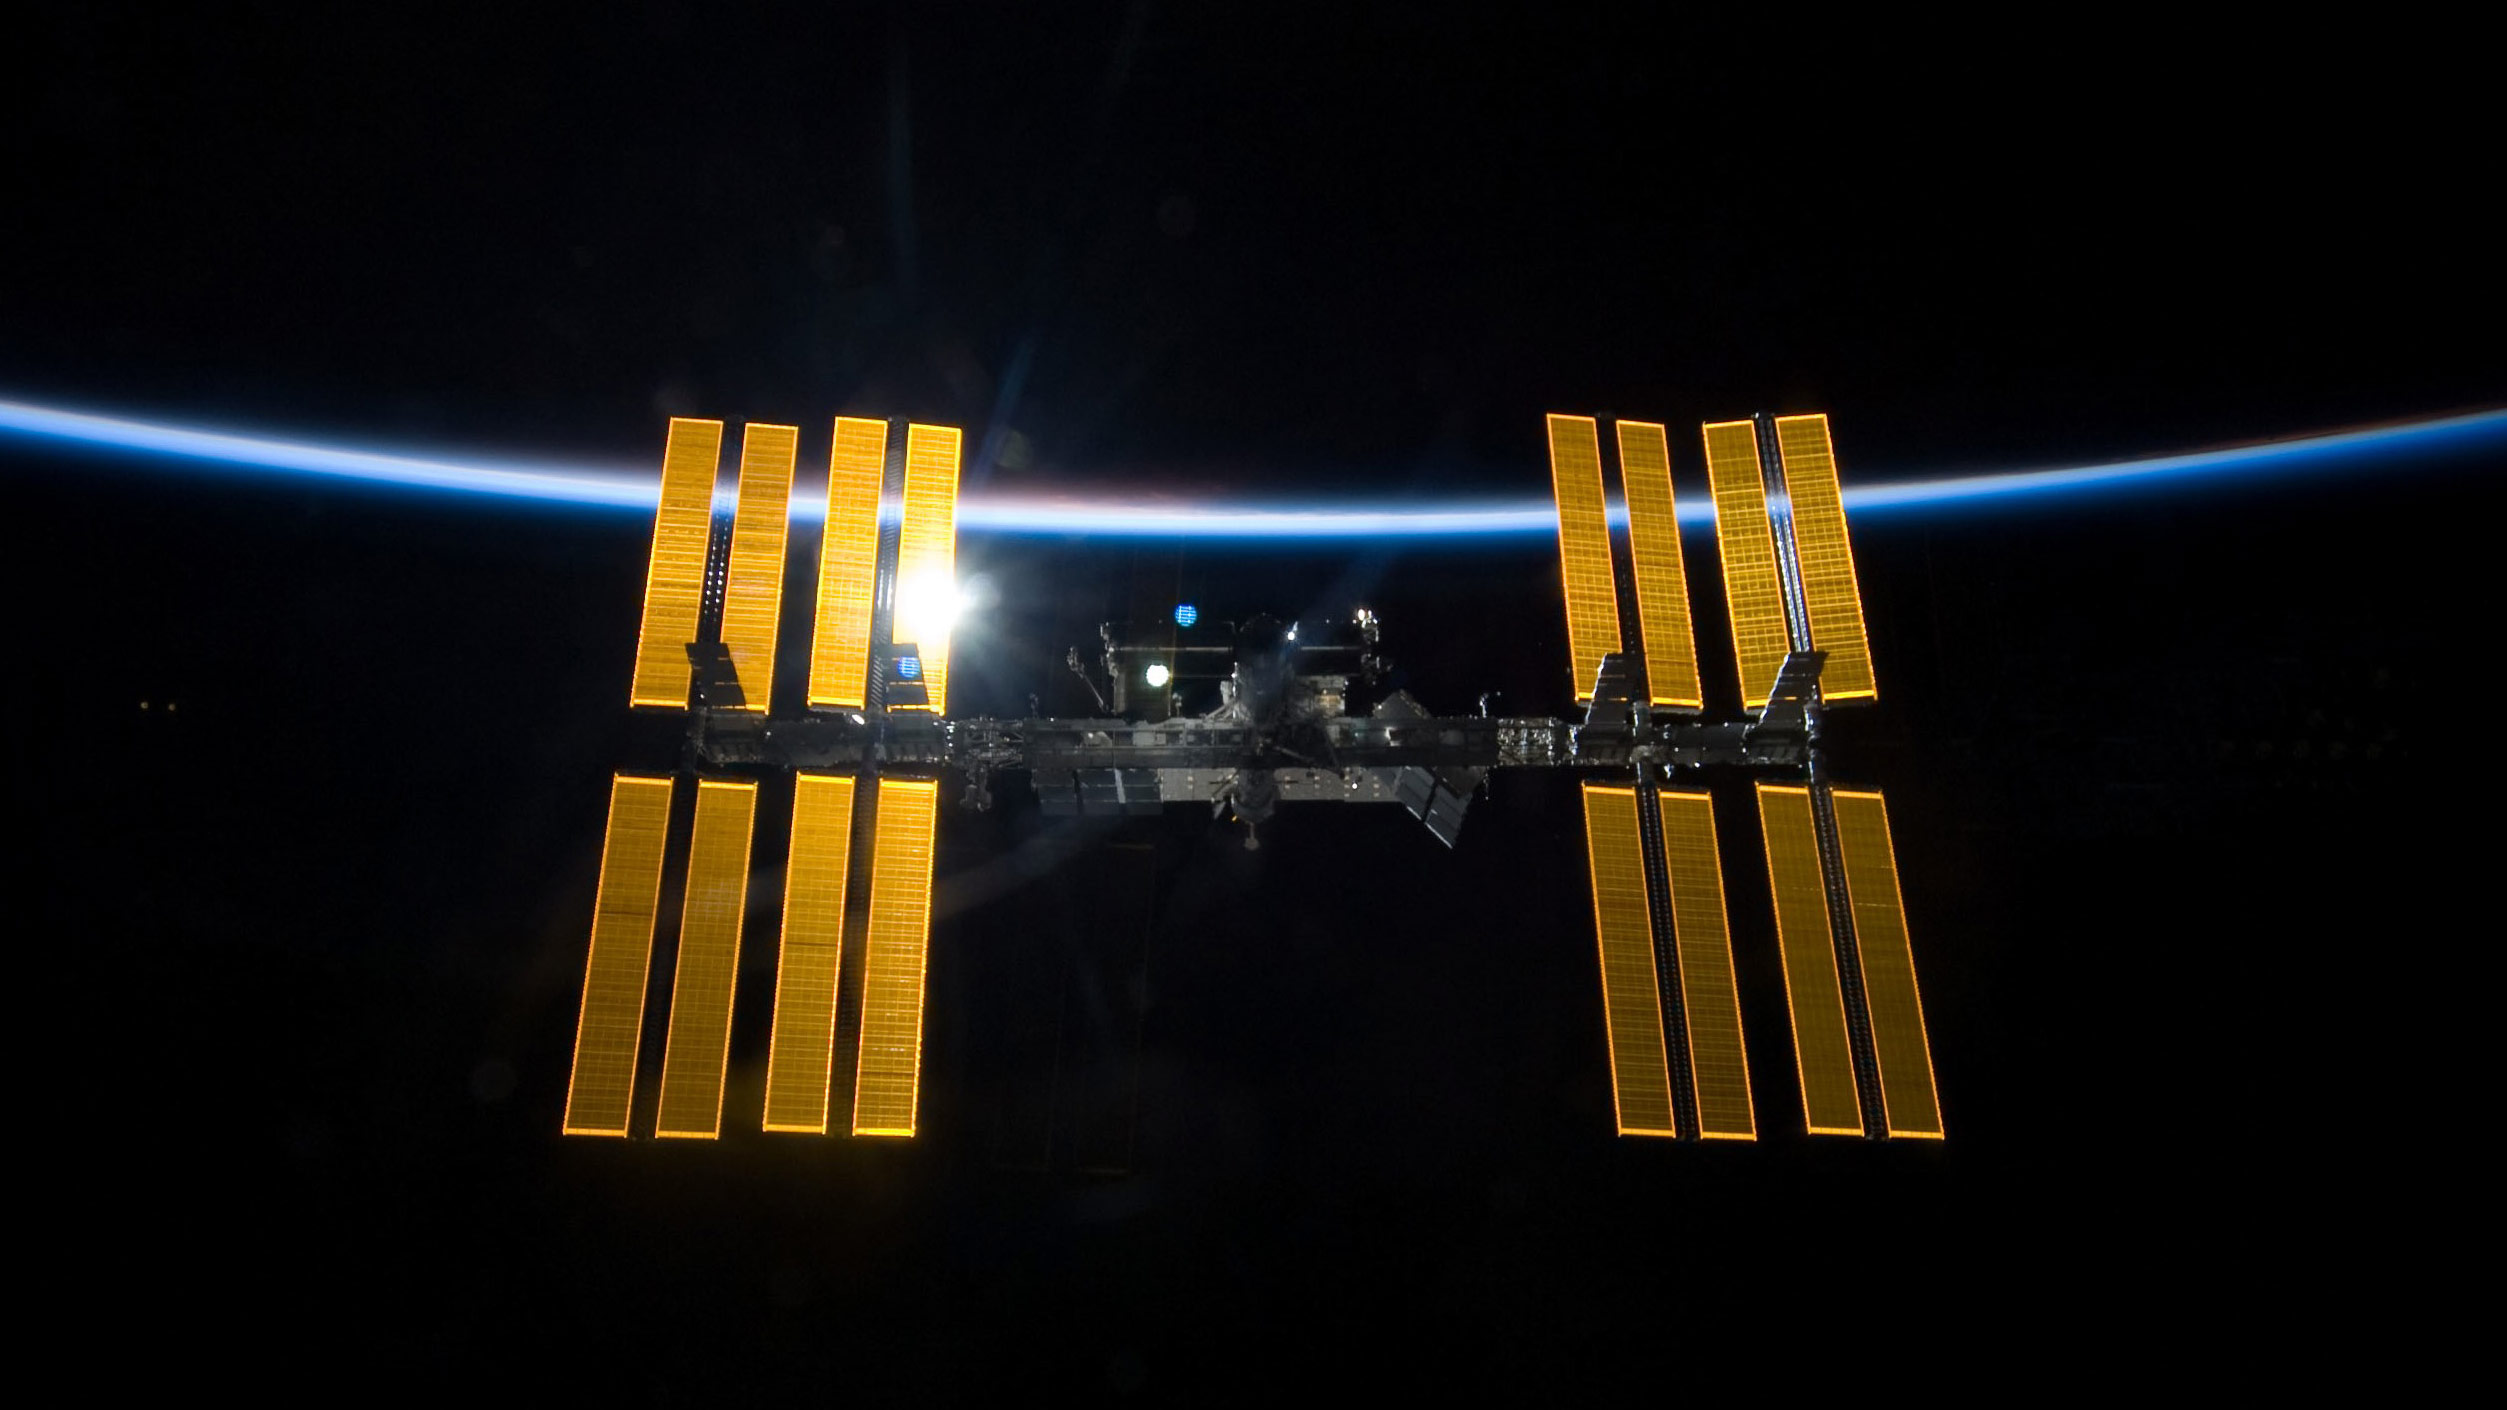 → Where is the ISS